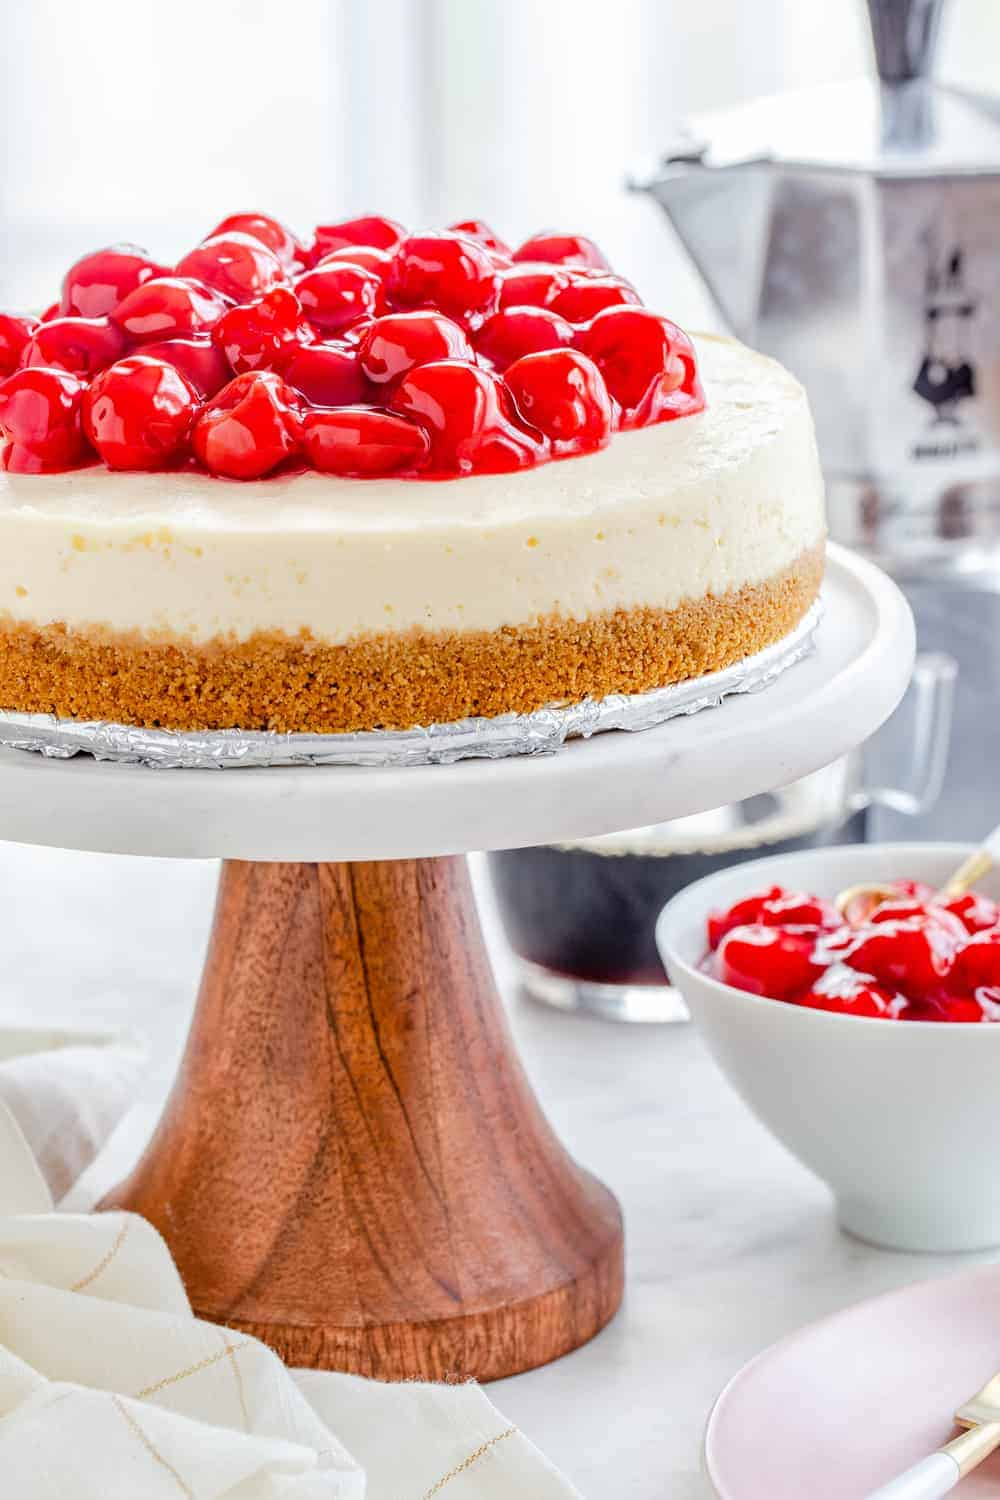 Instant Pot Cheesecake comes together with ease. This recipe is delicious and foolproof!